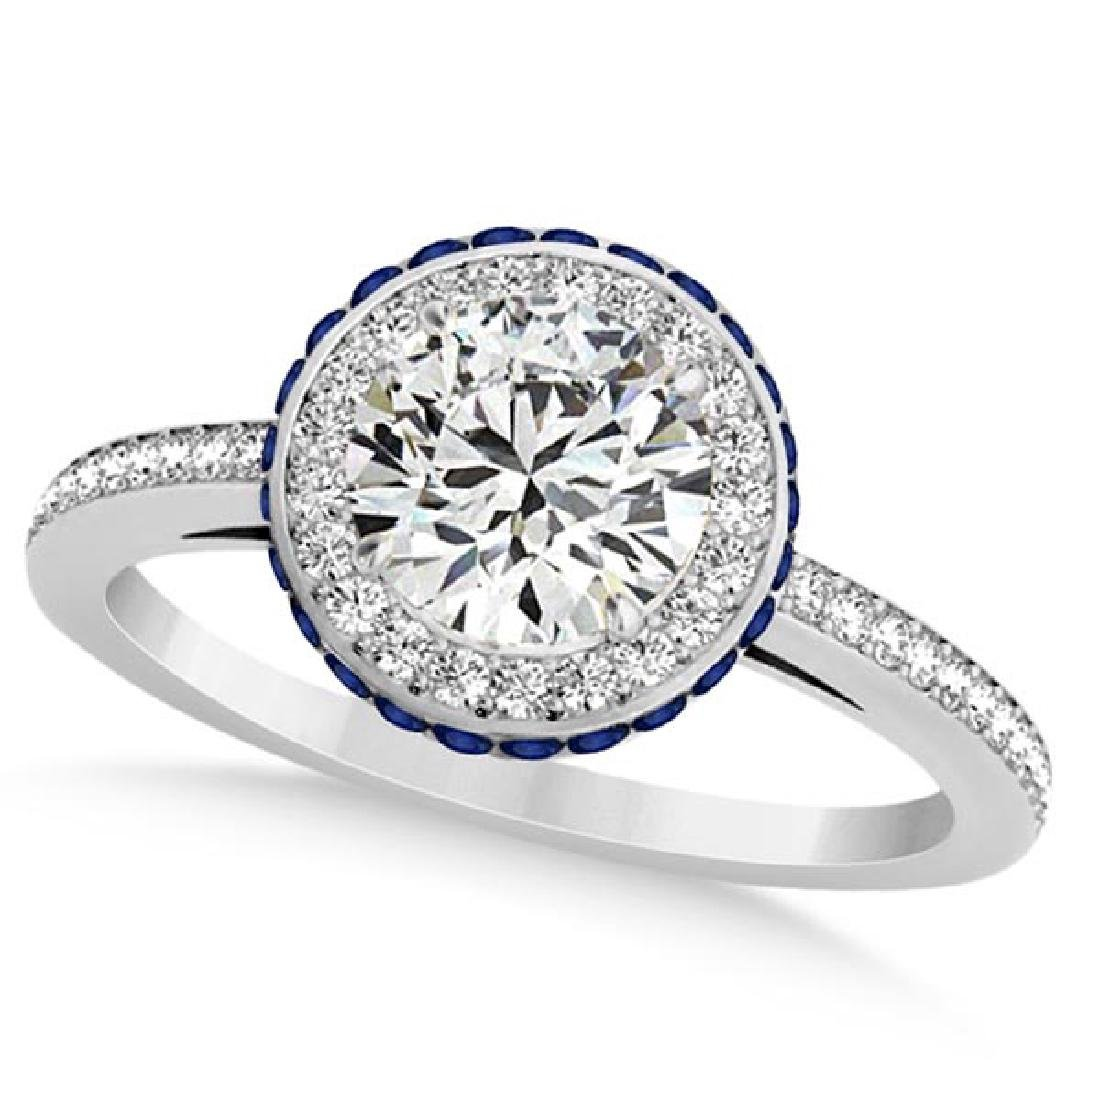 Diamond Halo and Sapphire Gemstone Engagement Ring 14k